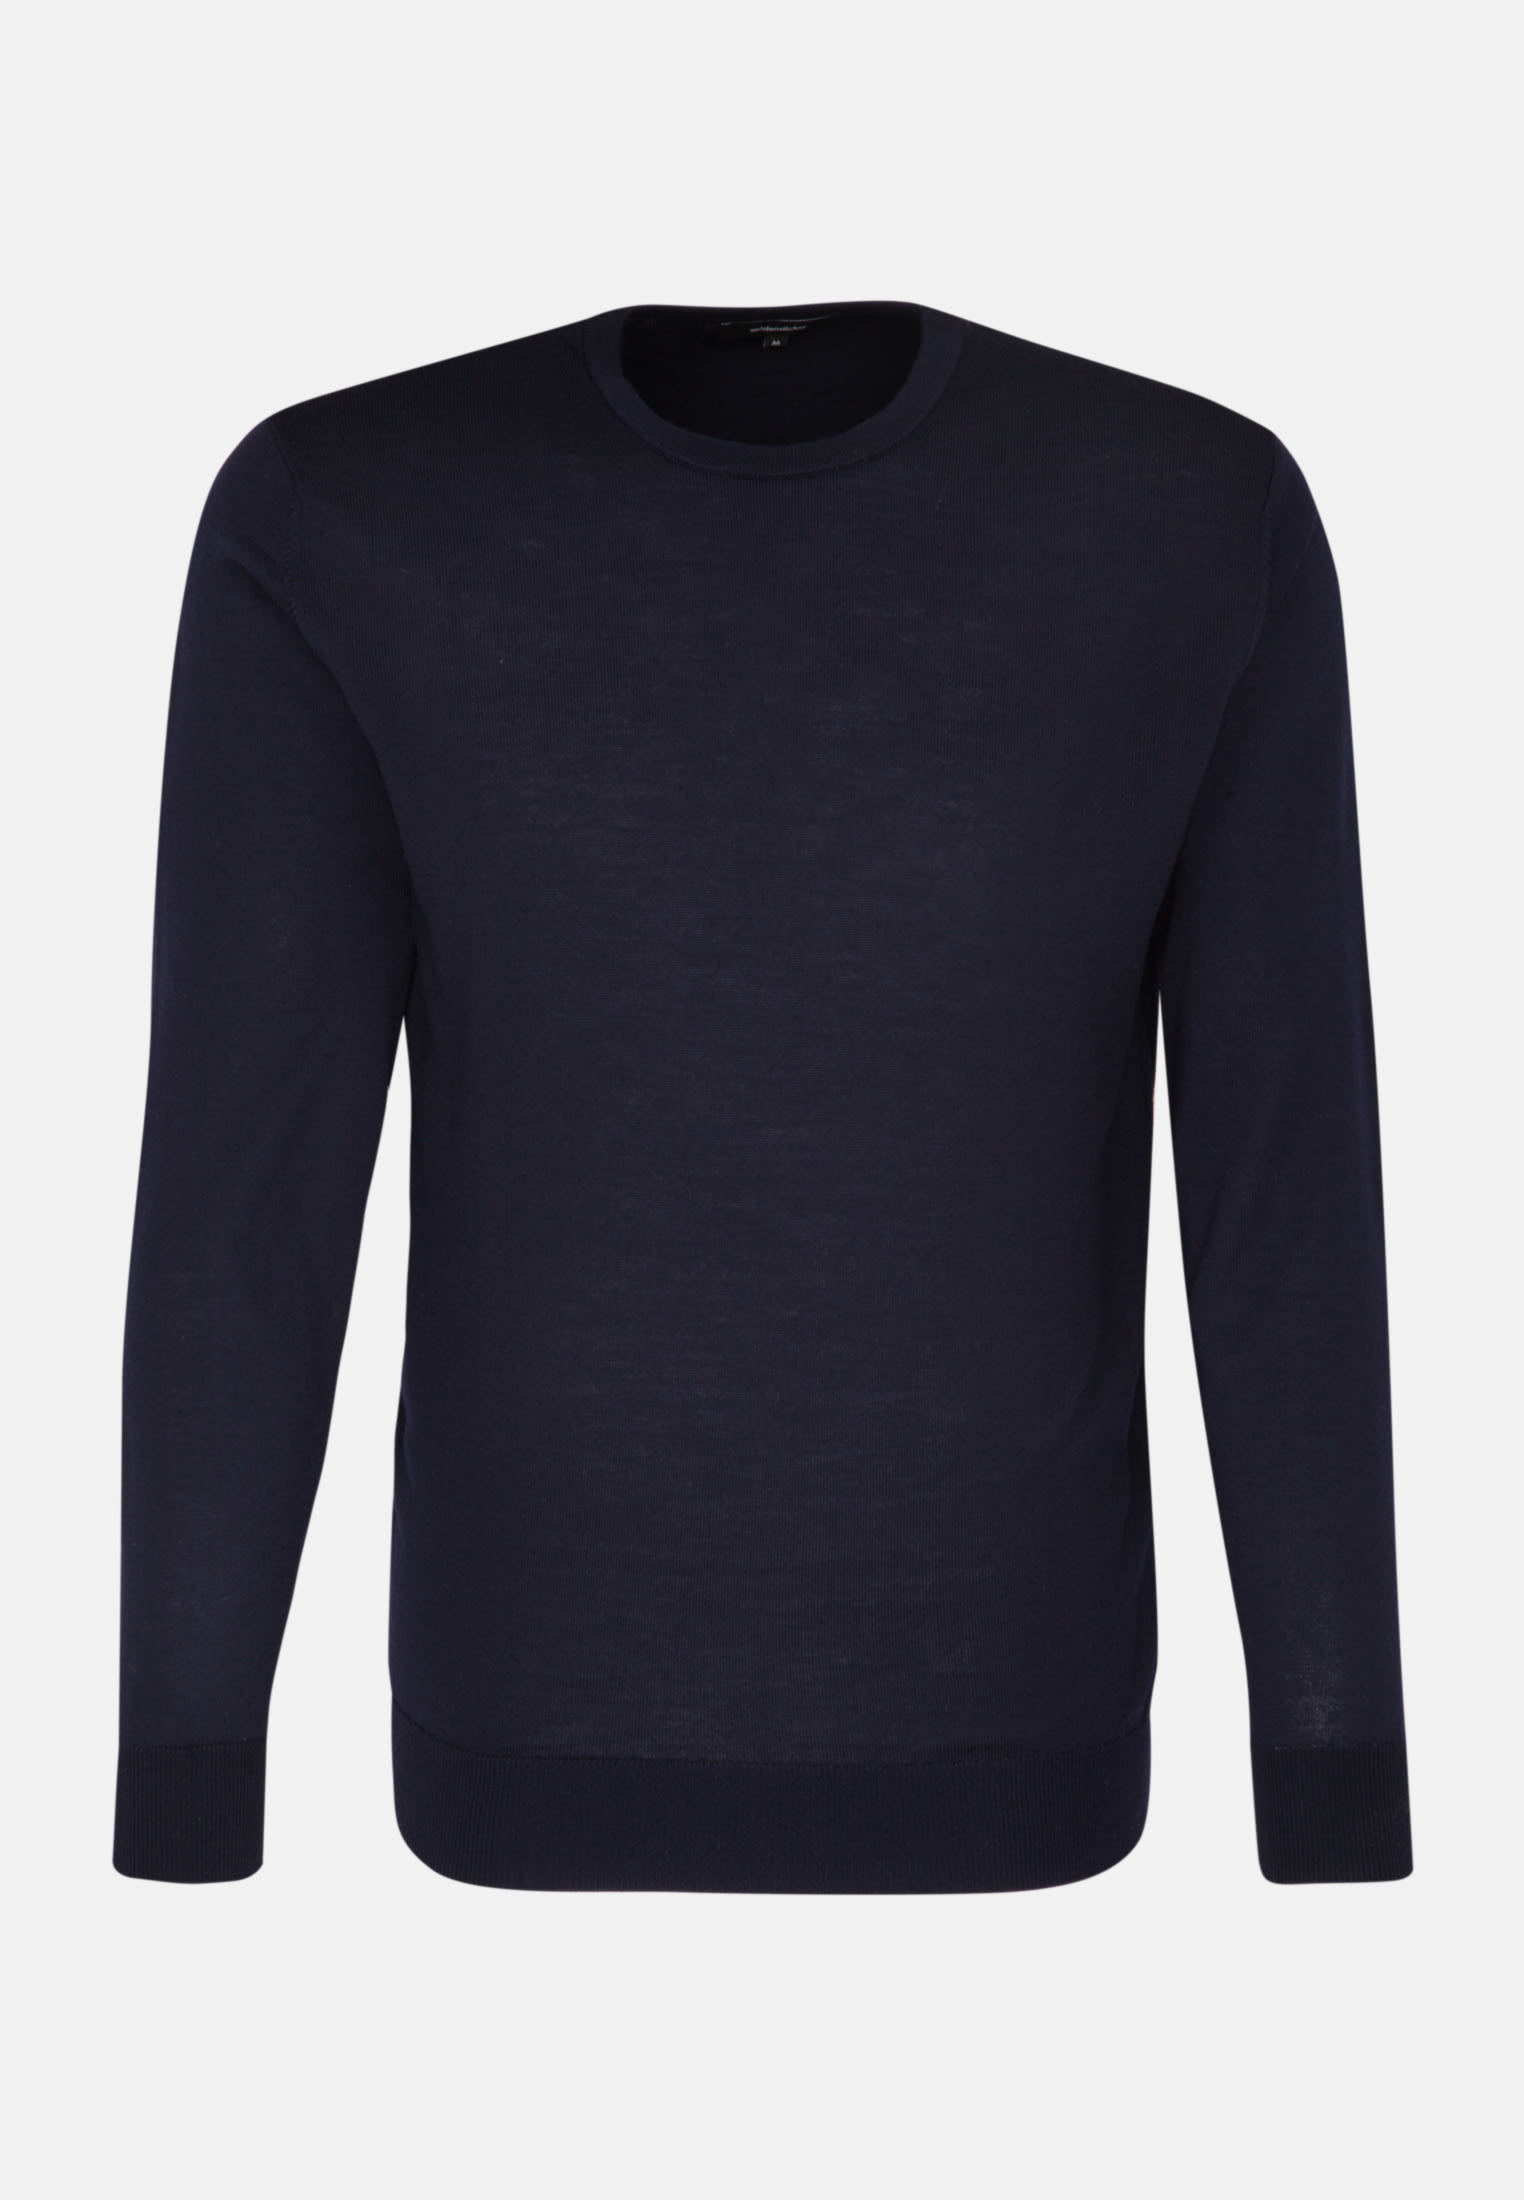 Crew Neck Pullover made of 100% Wool in Dark blue |  Seidensticker Onlineshop